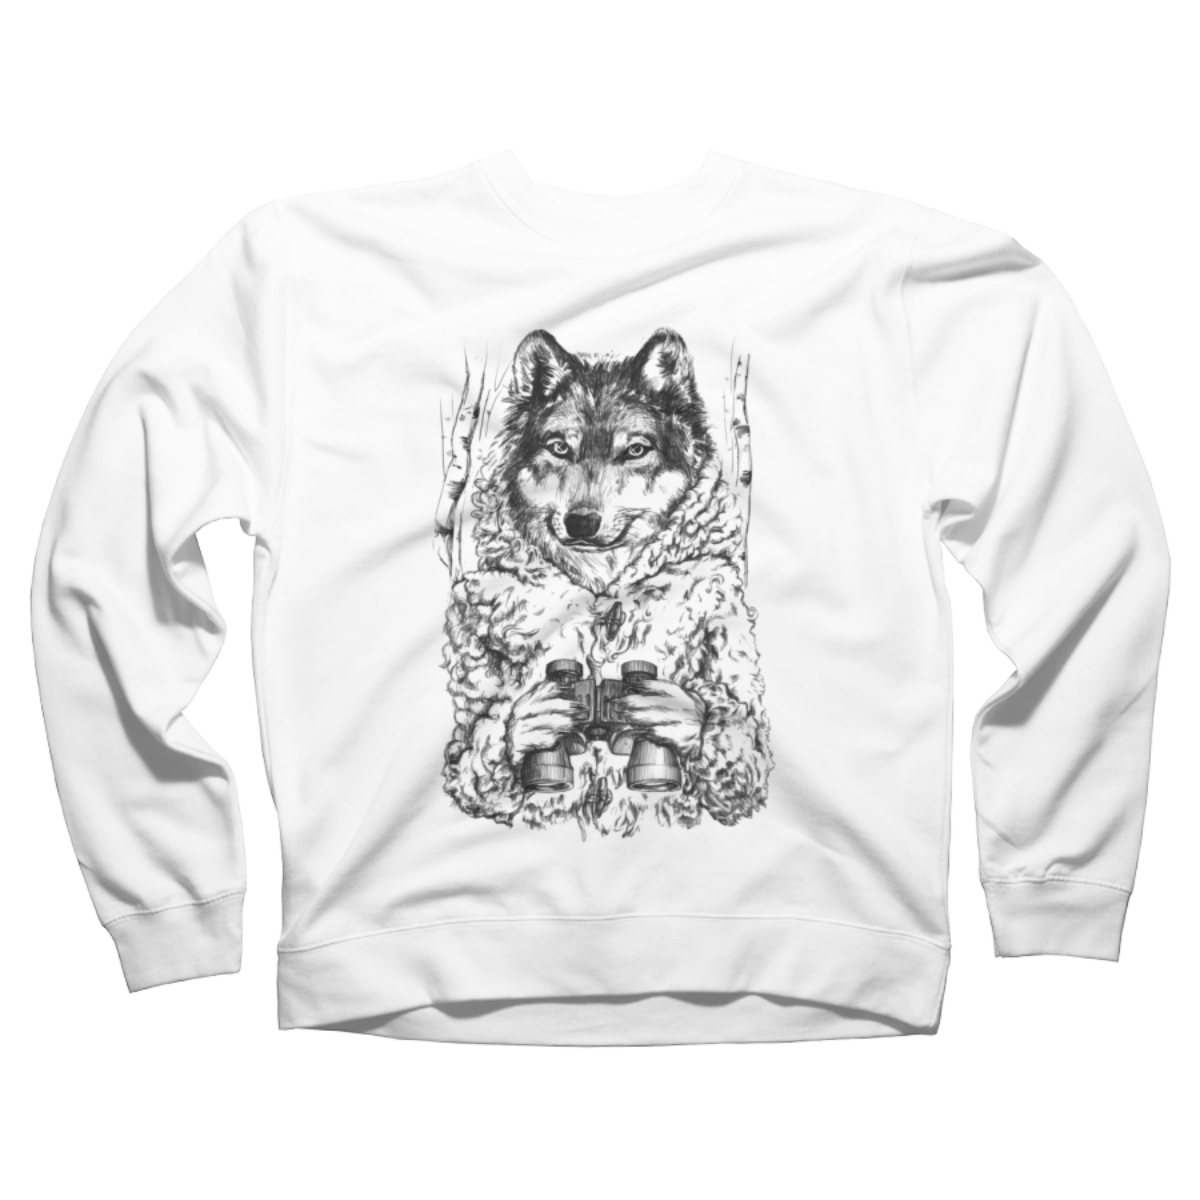 A Wolf in Sheep's Clothing Crew Neck Sweatshirt A Wolf in Sheep's Clothing is a cozy ring spun cotton White %type designed by gloopz. This design is featured in wolf, animals, art styles, illustrative, nature designs. Shop DesignByHumans.com for the best selection of cool graphic tees, tank tops, sweatshirts, notebooks, phone cases, and art prints.